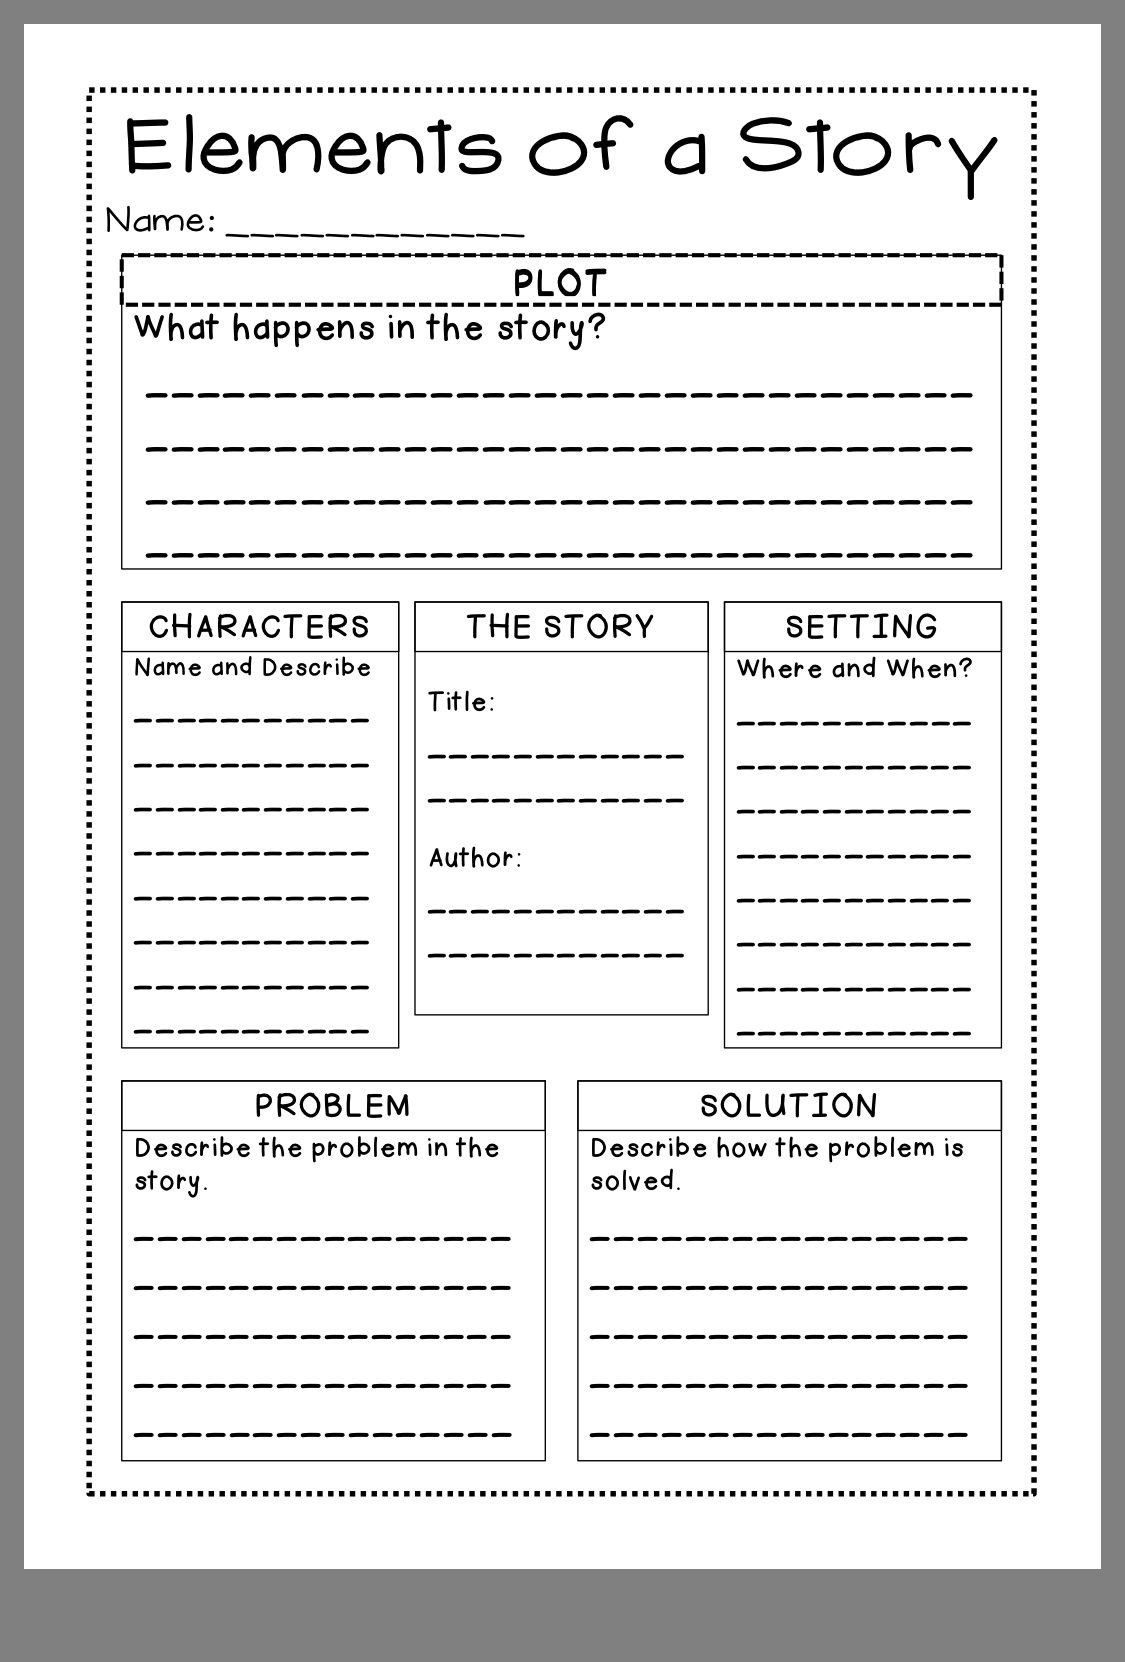 Story Elements Worksheet 4th Grade Pin By Jill Brewington